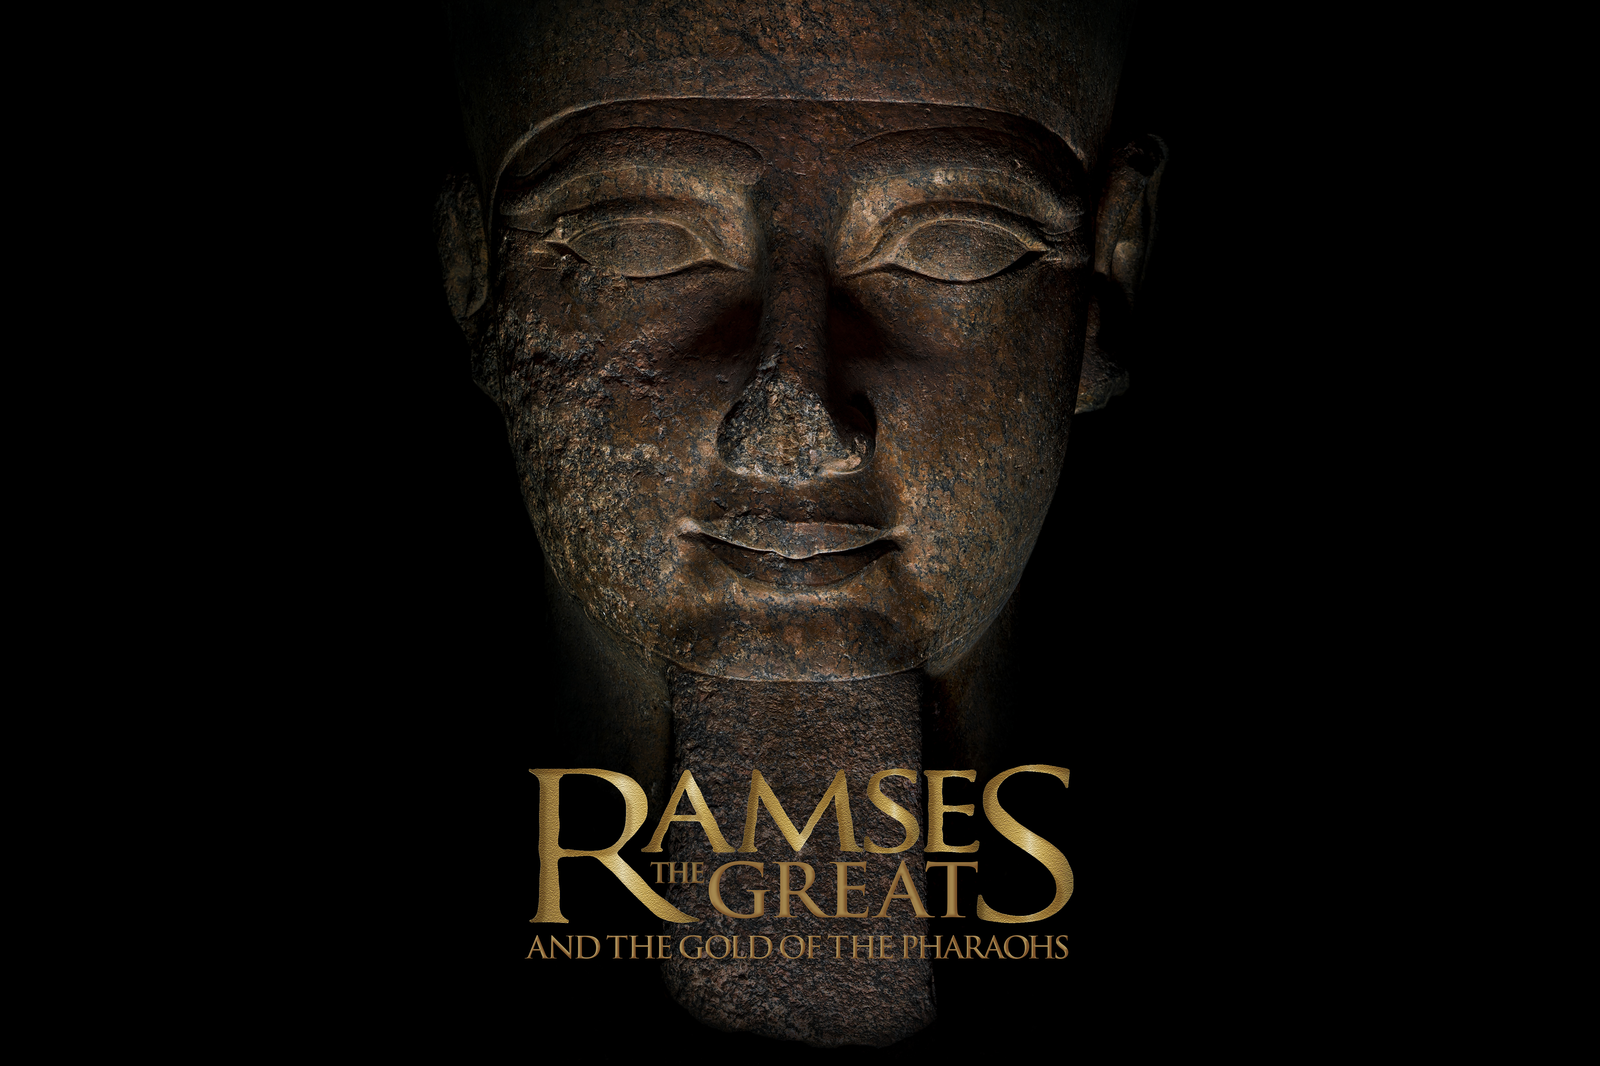 Ramses the Great exhibition